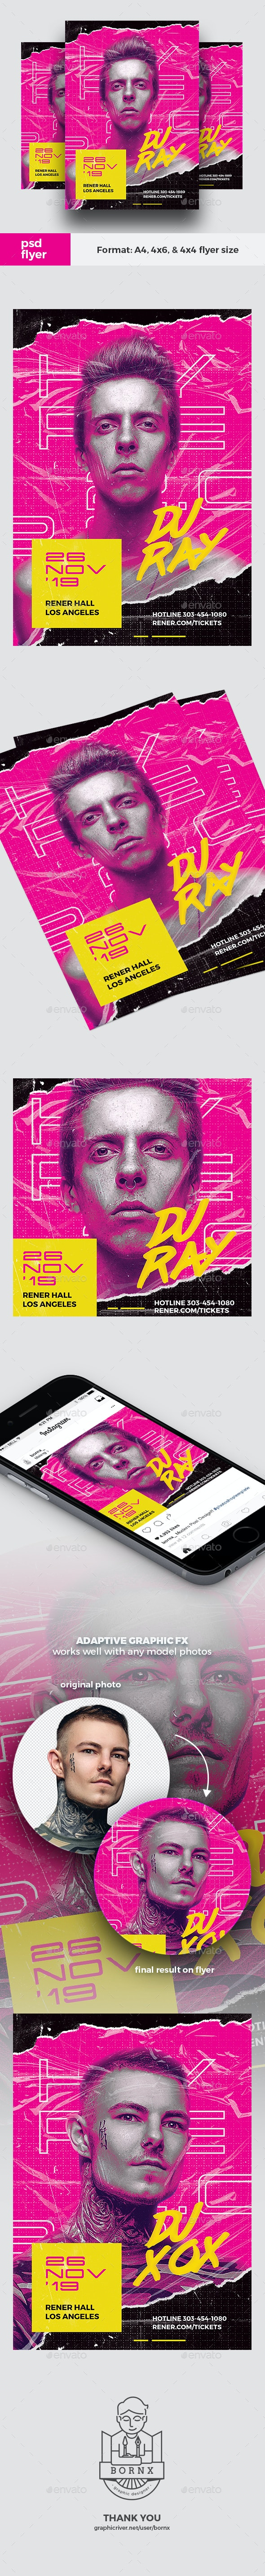 Hype DJ Flyer - Clubs & Parties Events